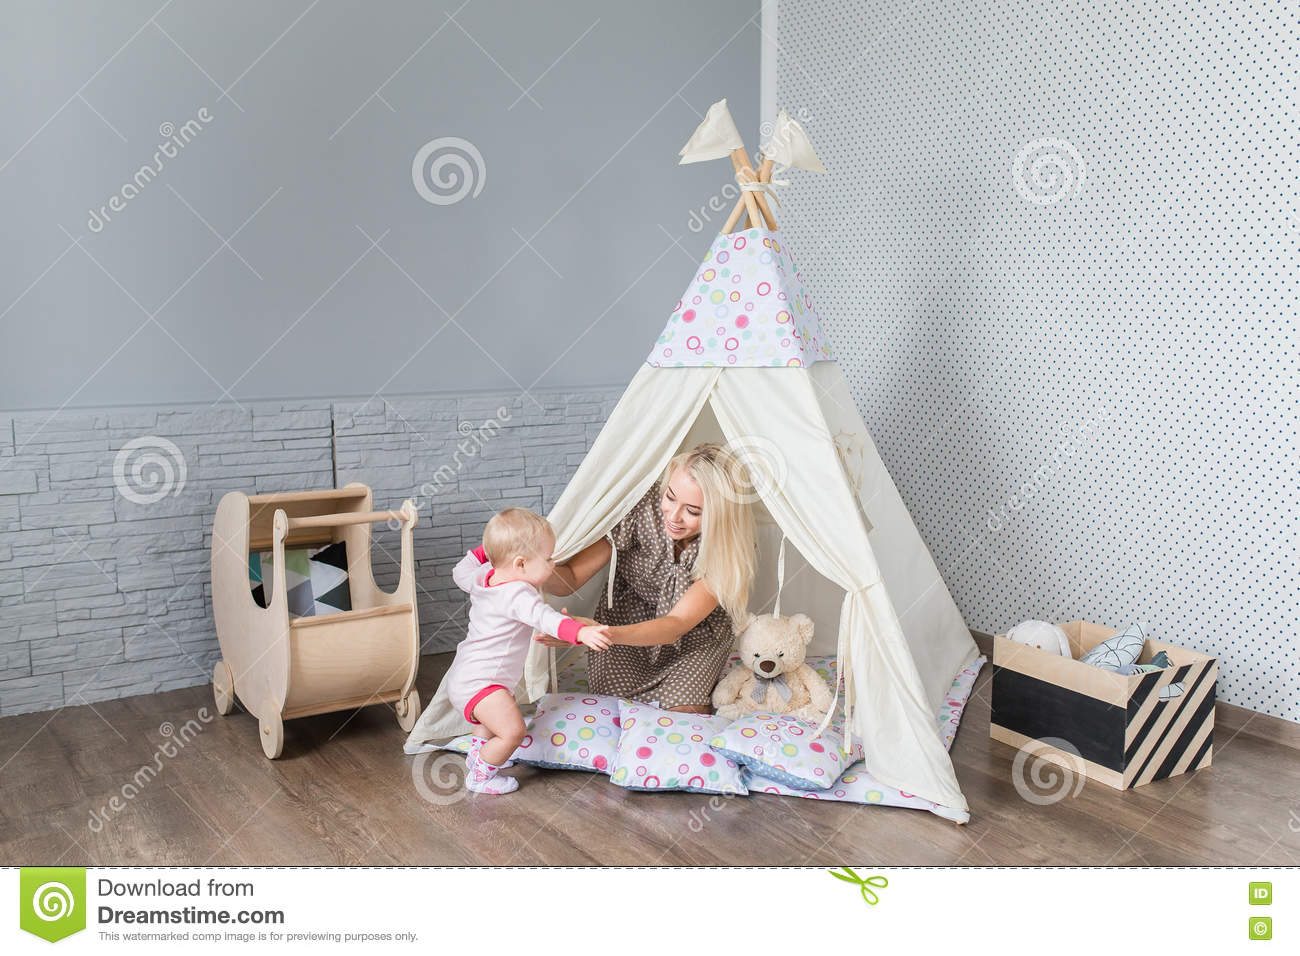 Parents with children in a teepee